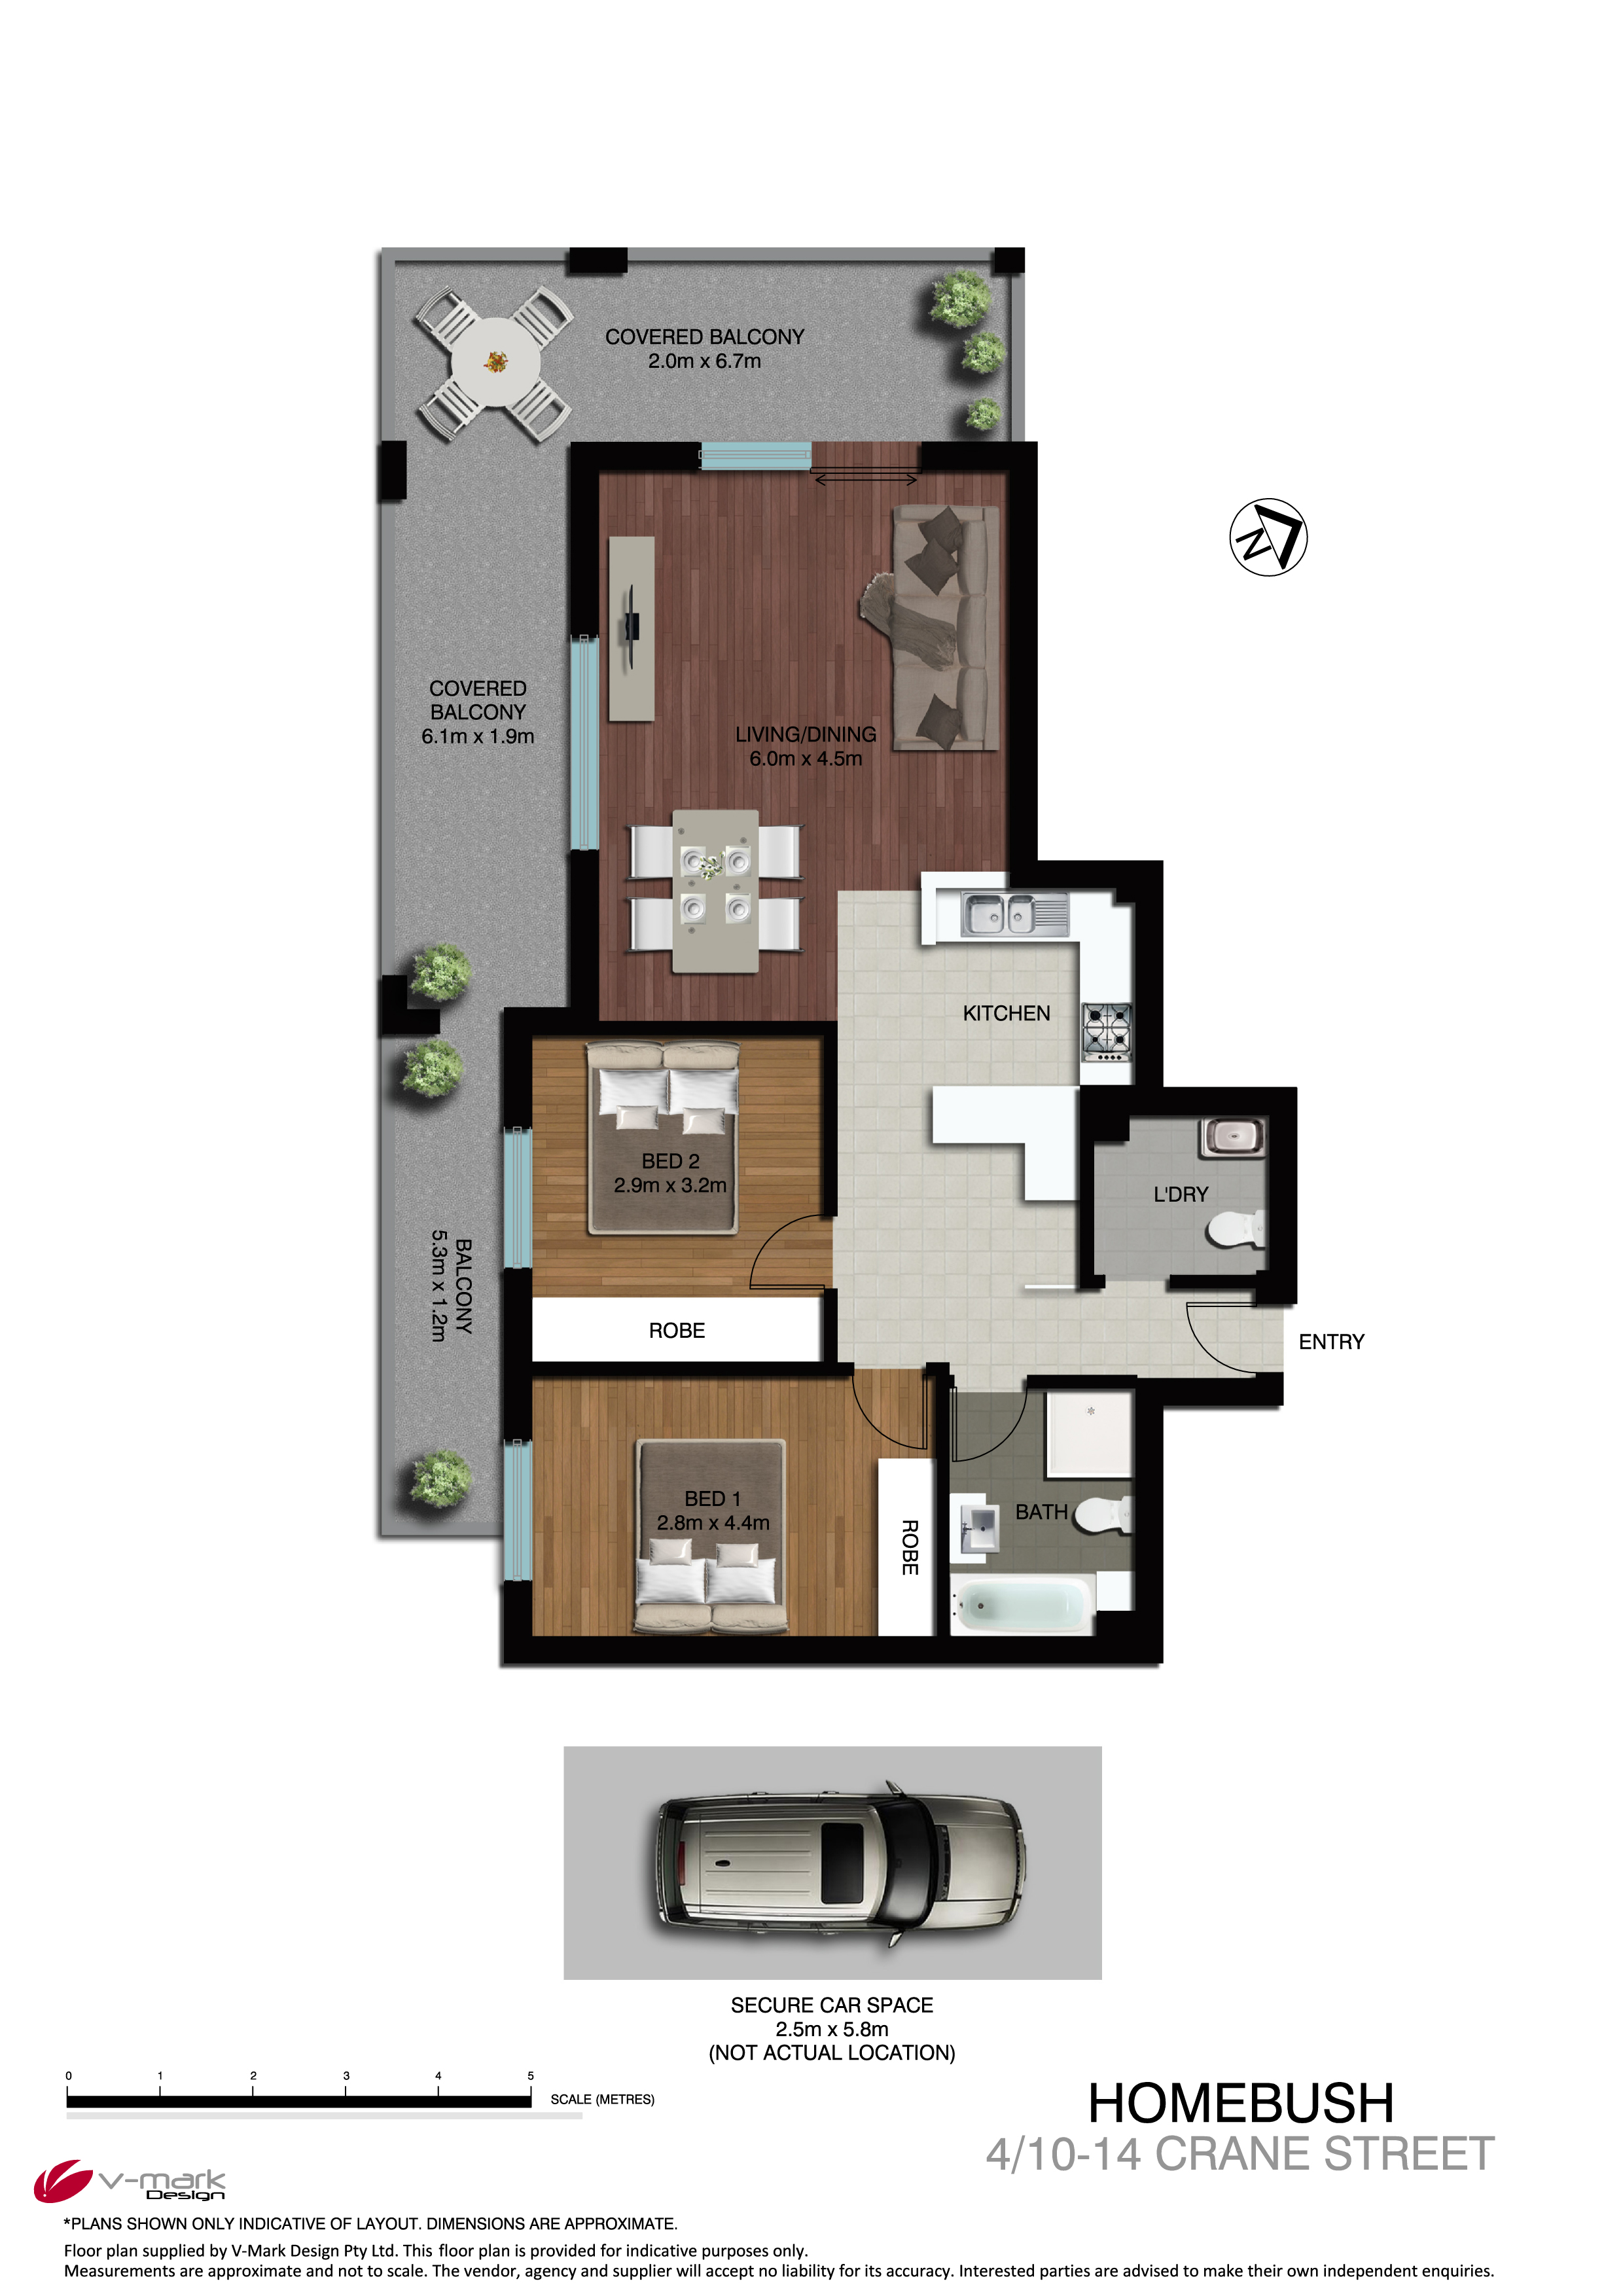 Click floor plan for a larger view